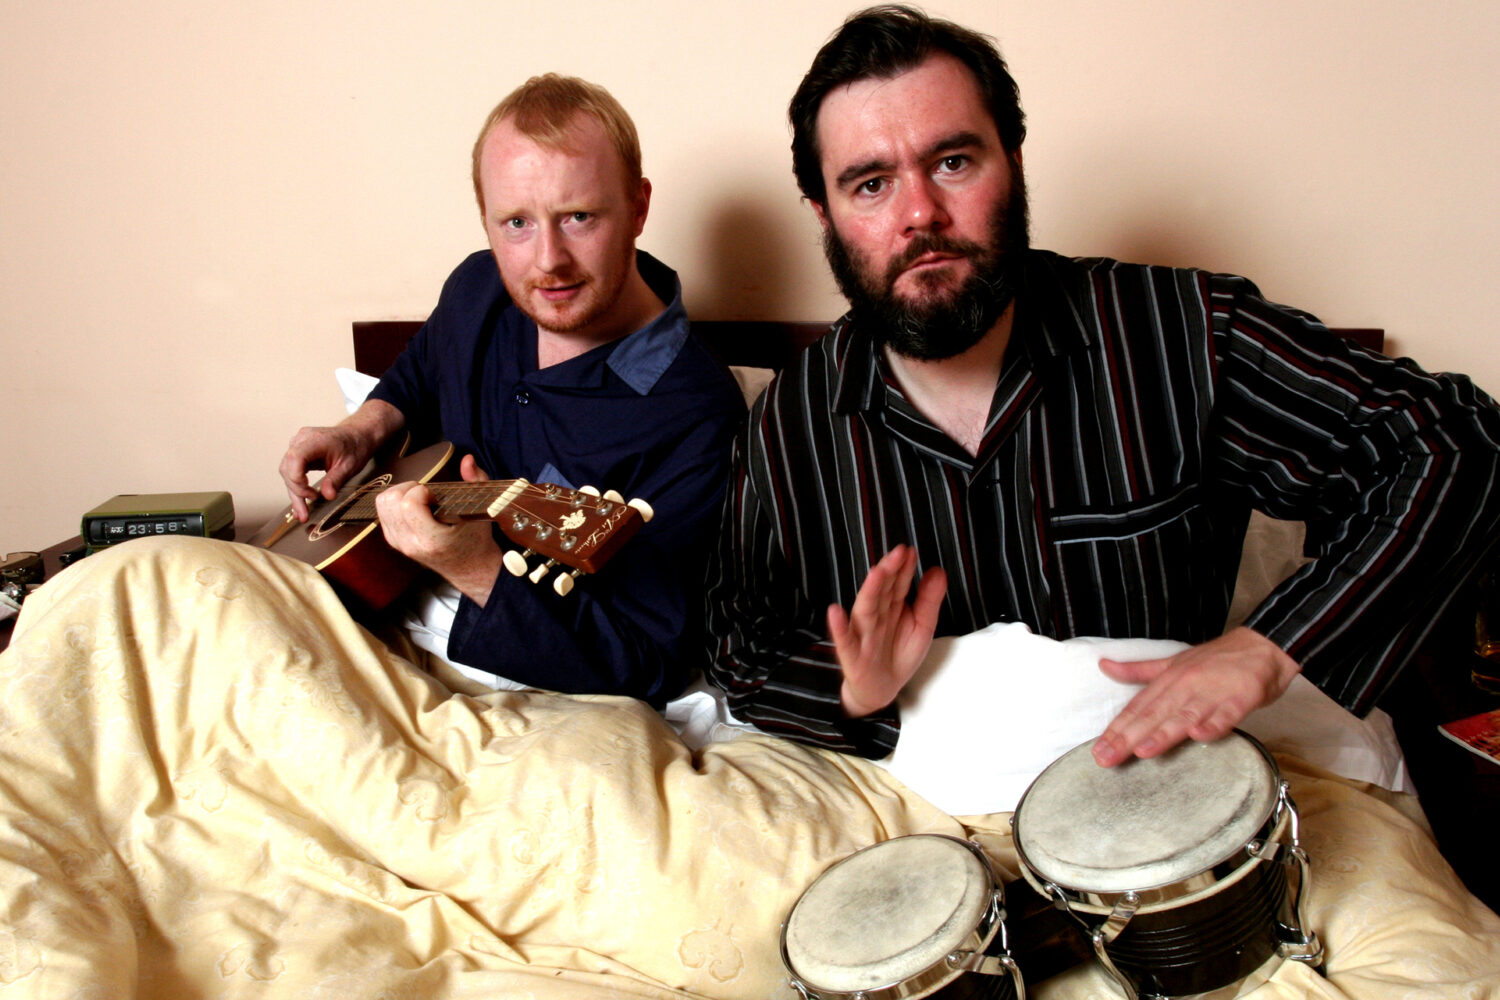 Arab Strap continue their return with 'The First Big Weekend Of 2016' video